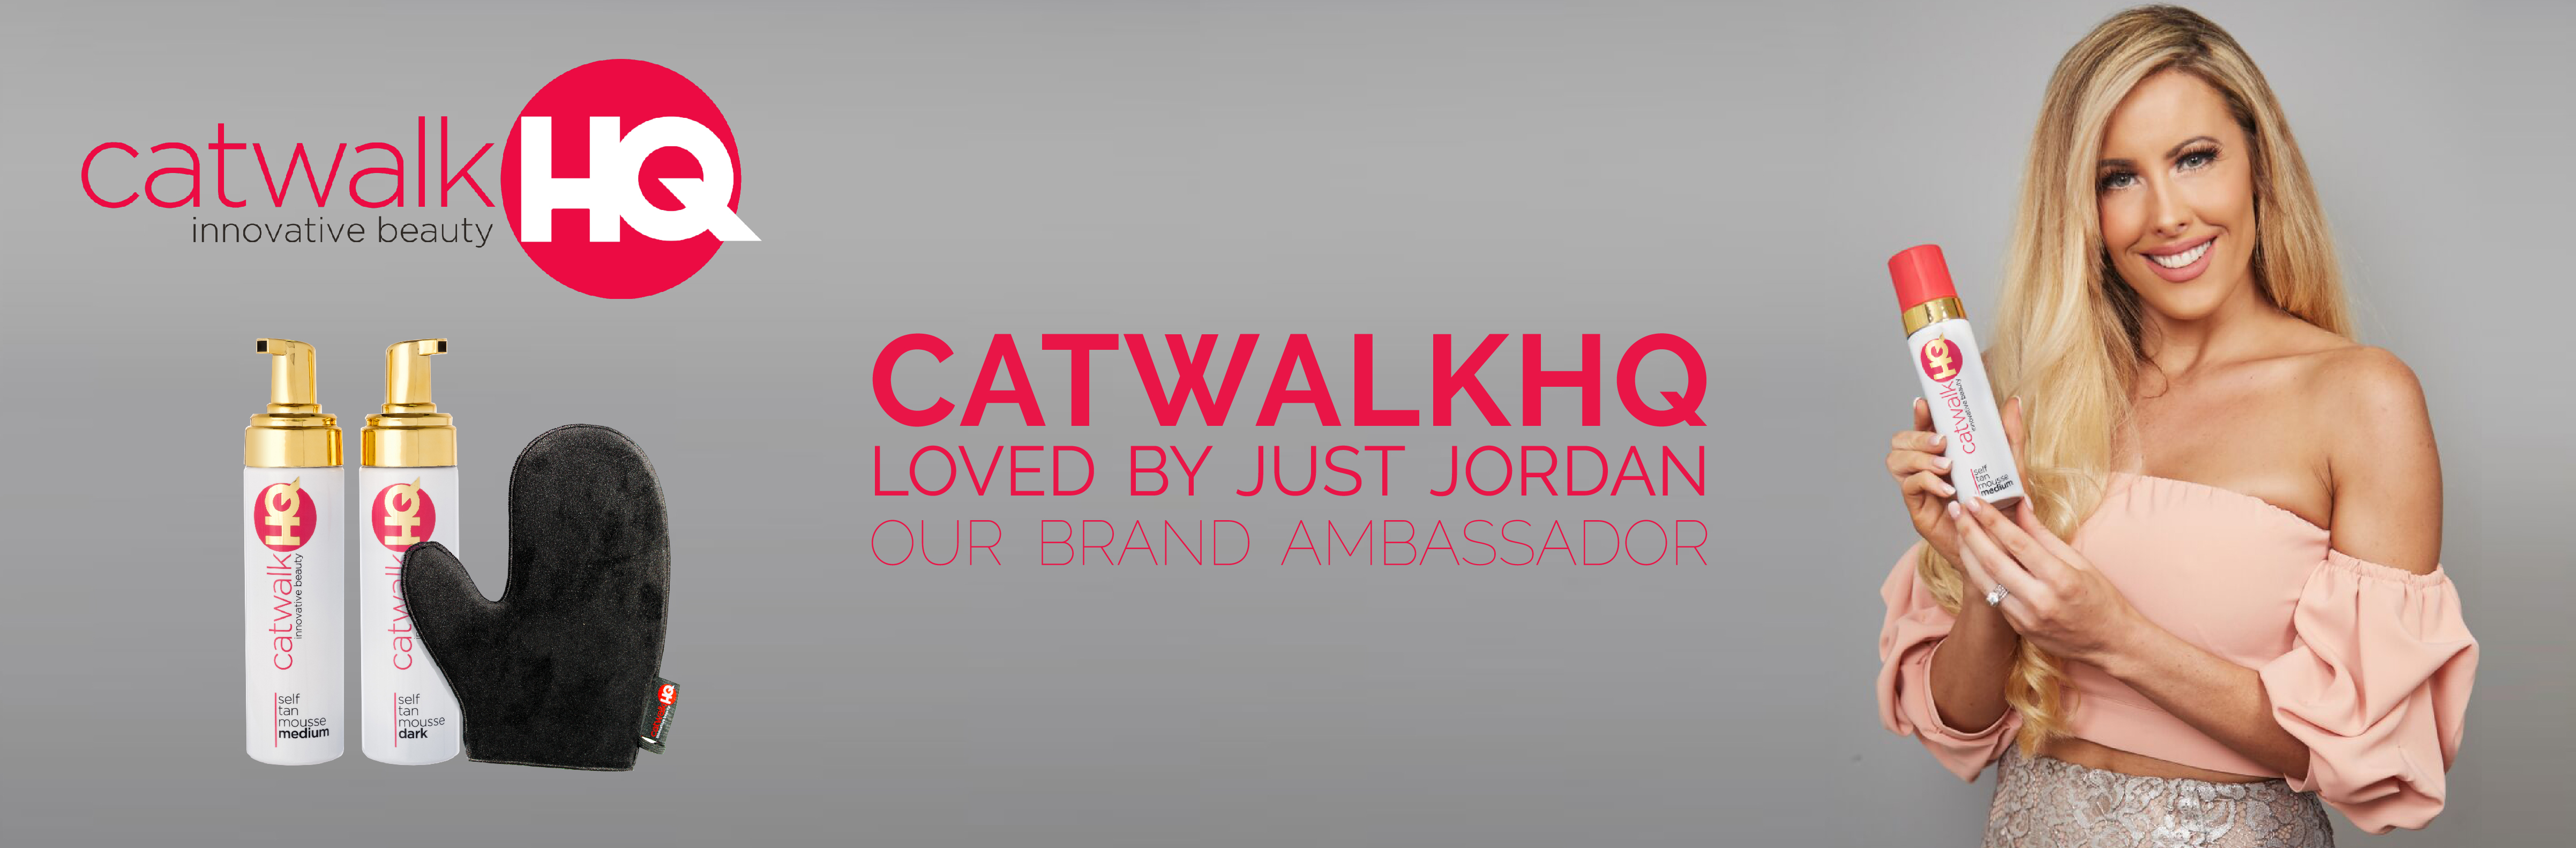 Catwalk HQ